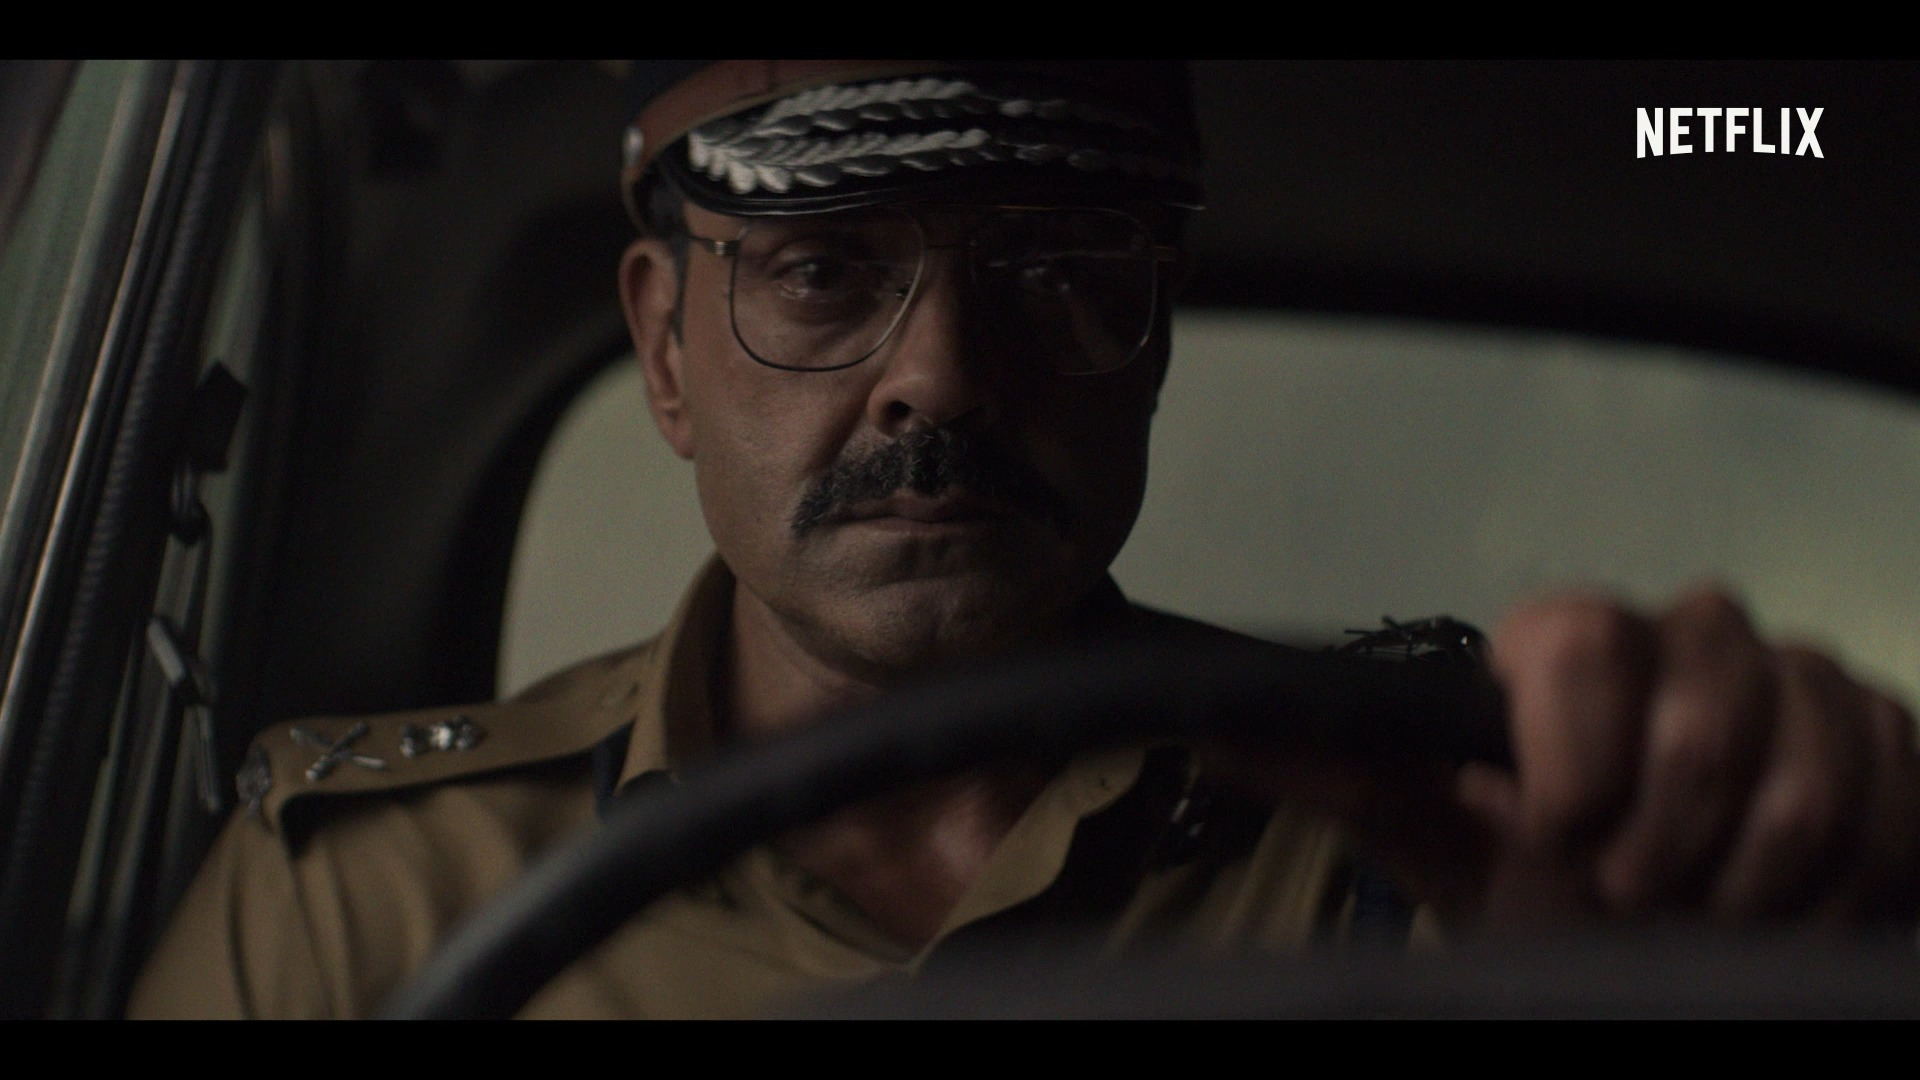 Loved #BobbyDeol in Class of '83, and the new talents #HiteshBhojraj, #BhupendraJadawat, Sameer Paranjape, #NinadMahajani & Prithvik Pratap as young, fearless cadets are fabulous in the film!  Hope you enjoy the #ClassOf83Trailer! Premieres 21-Aug on Netflix.  Directed by #AtulSabharwal. Produced by Red Chillies Entertainment, Gauri Khan , Gaurav Verma